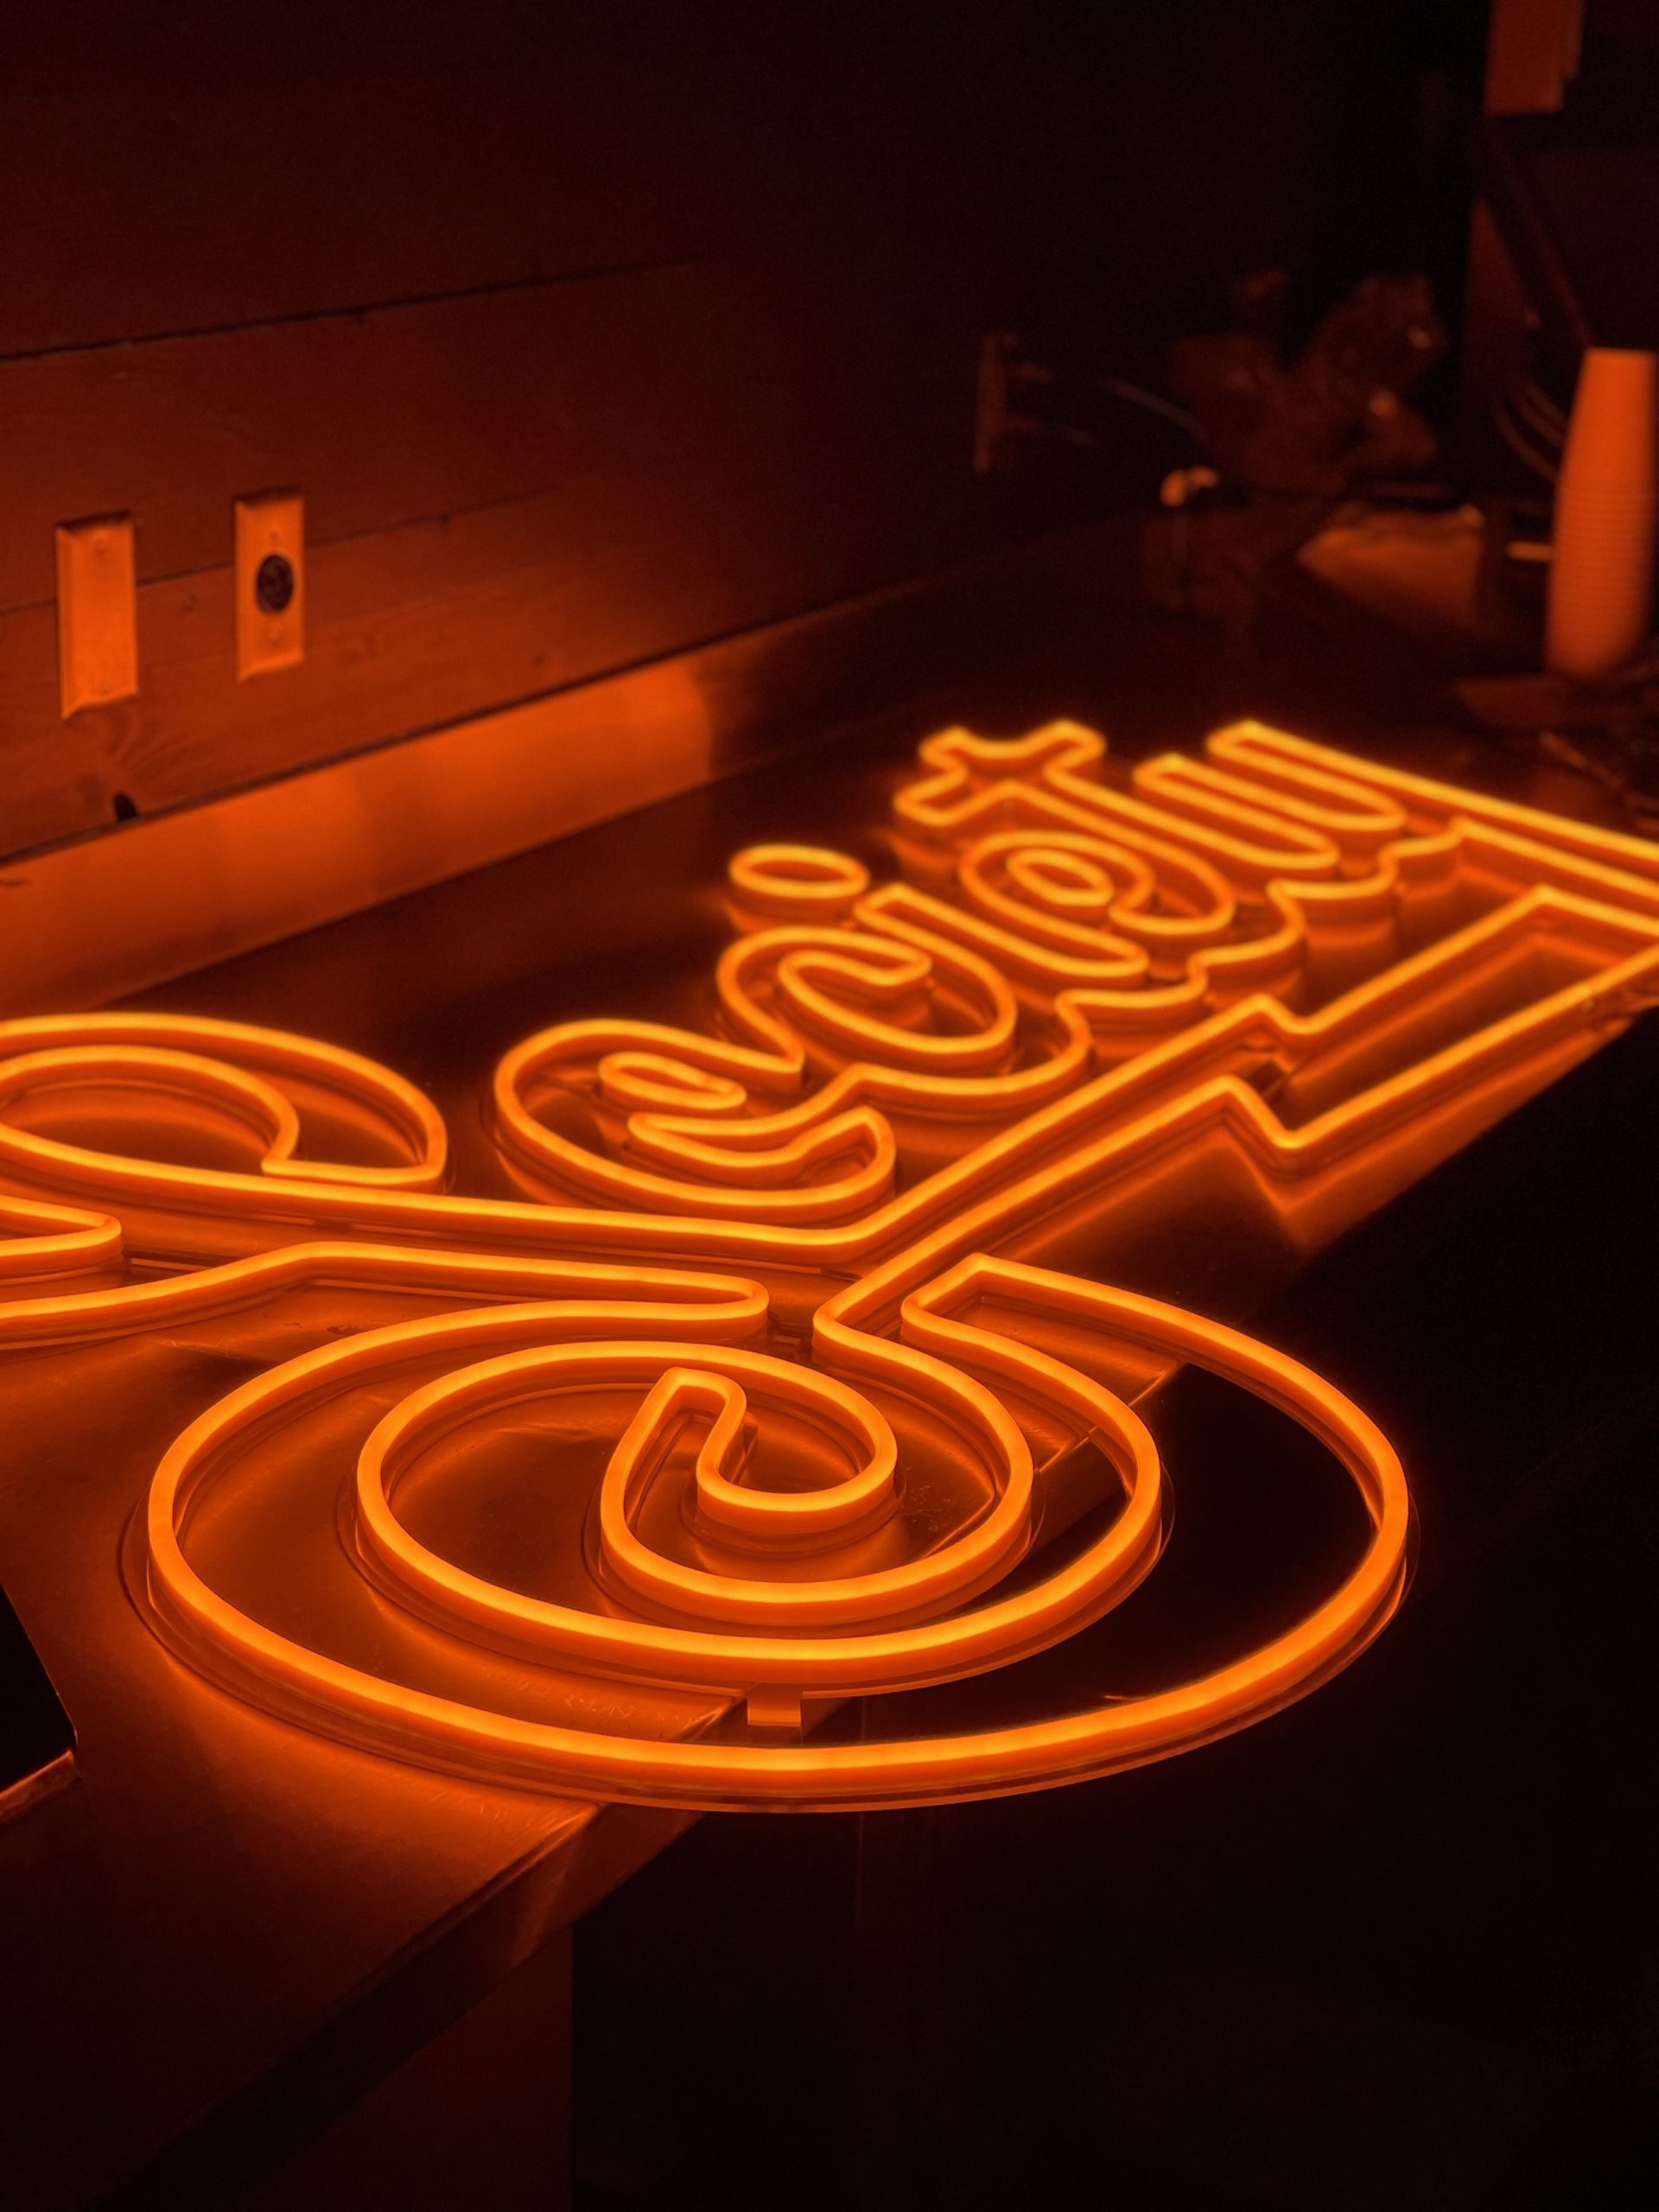 Neon sign for SOCIETY